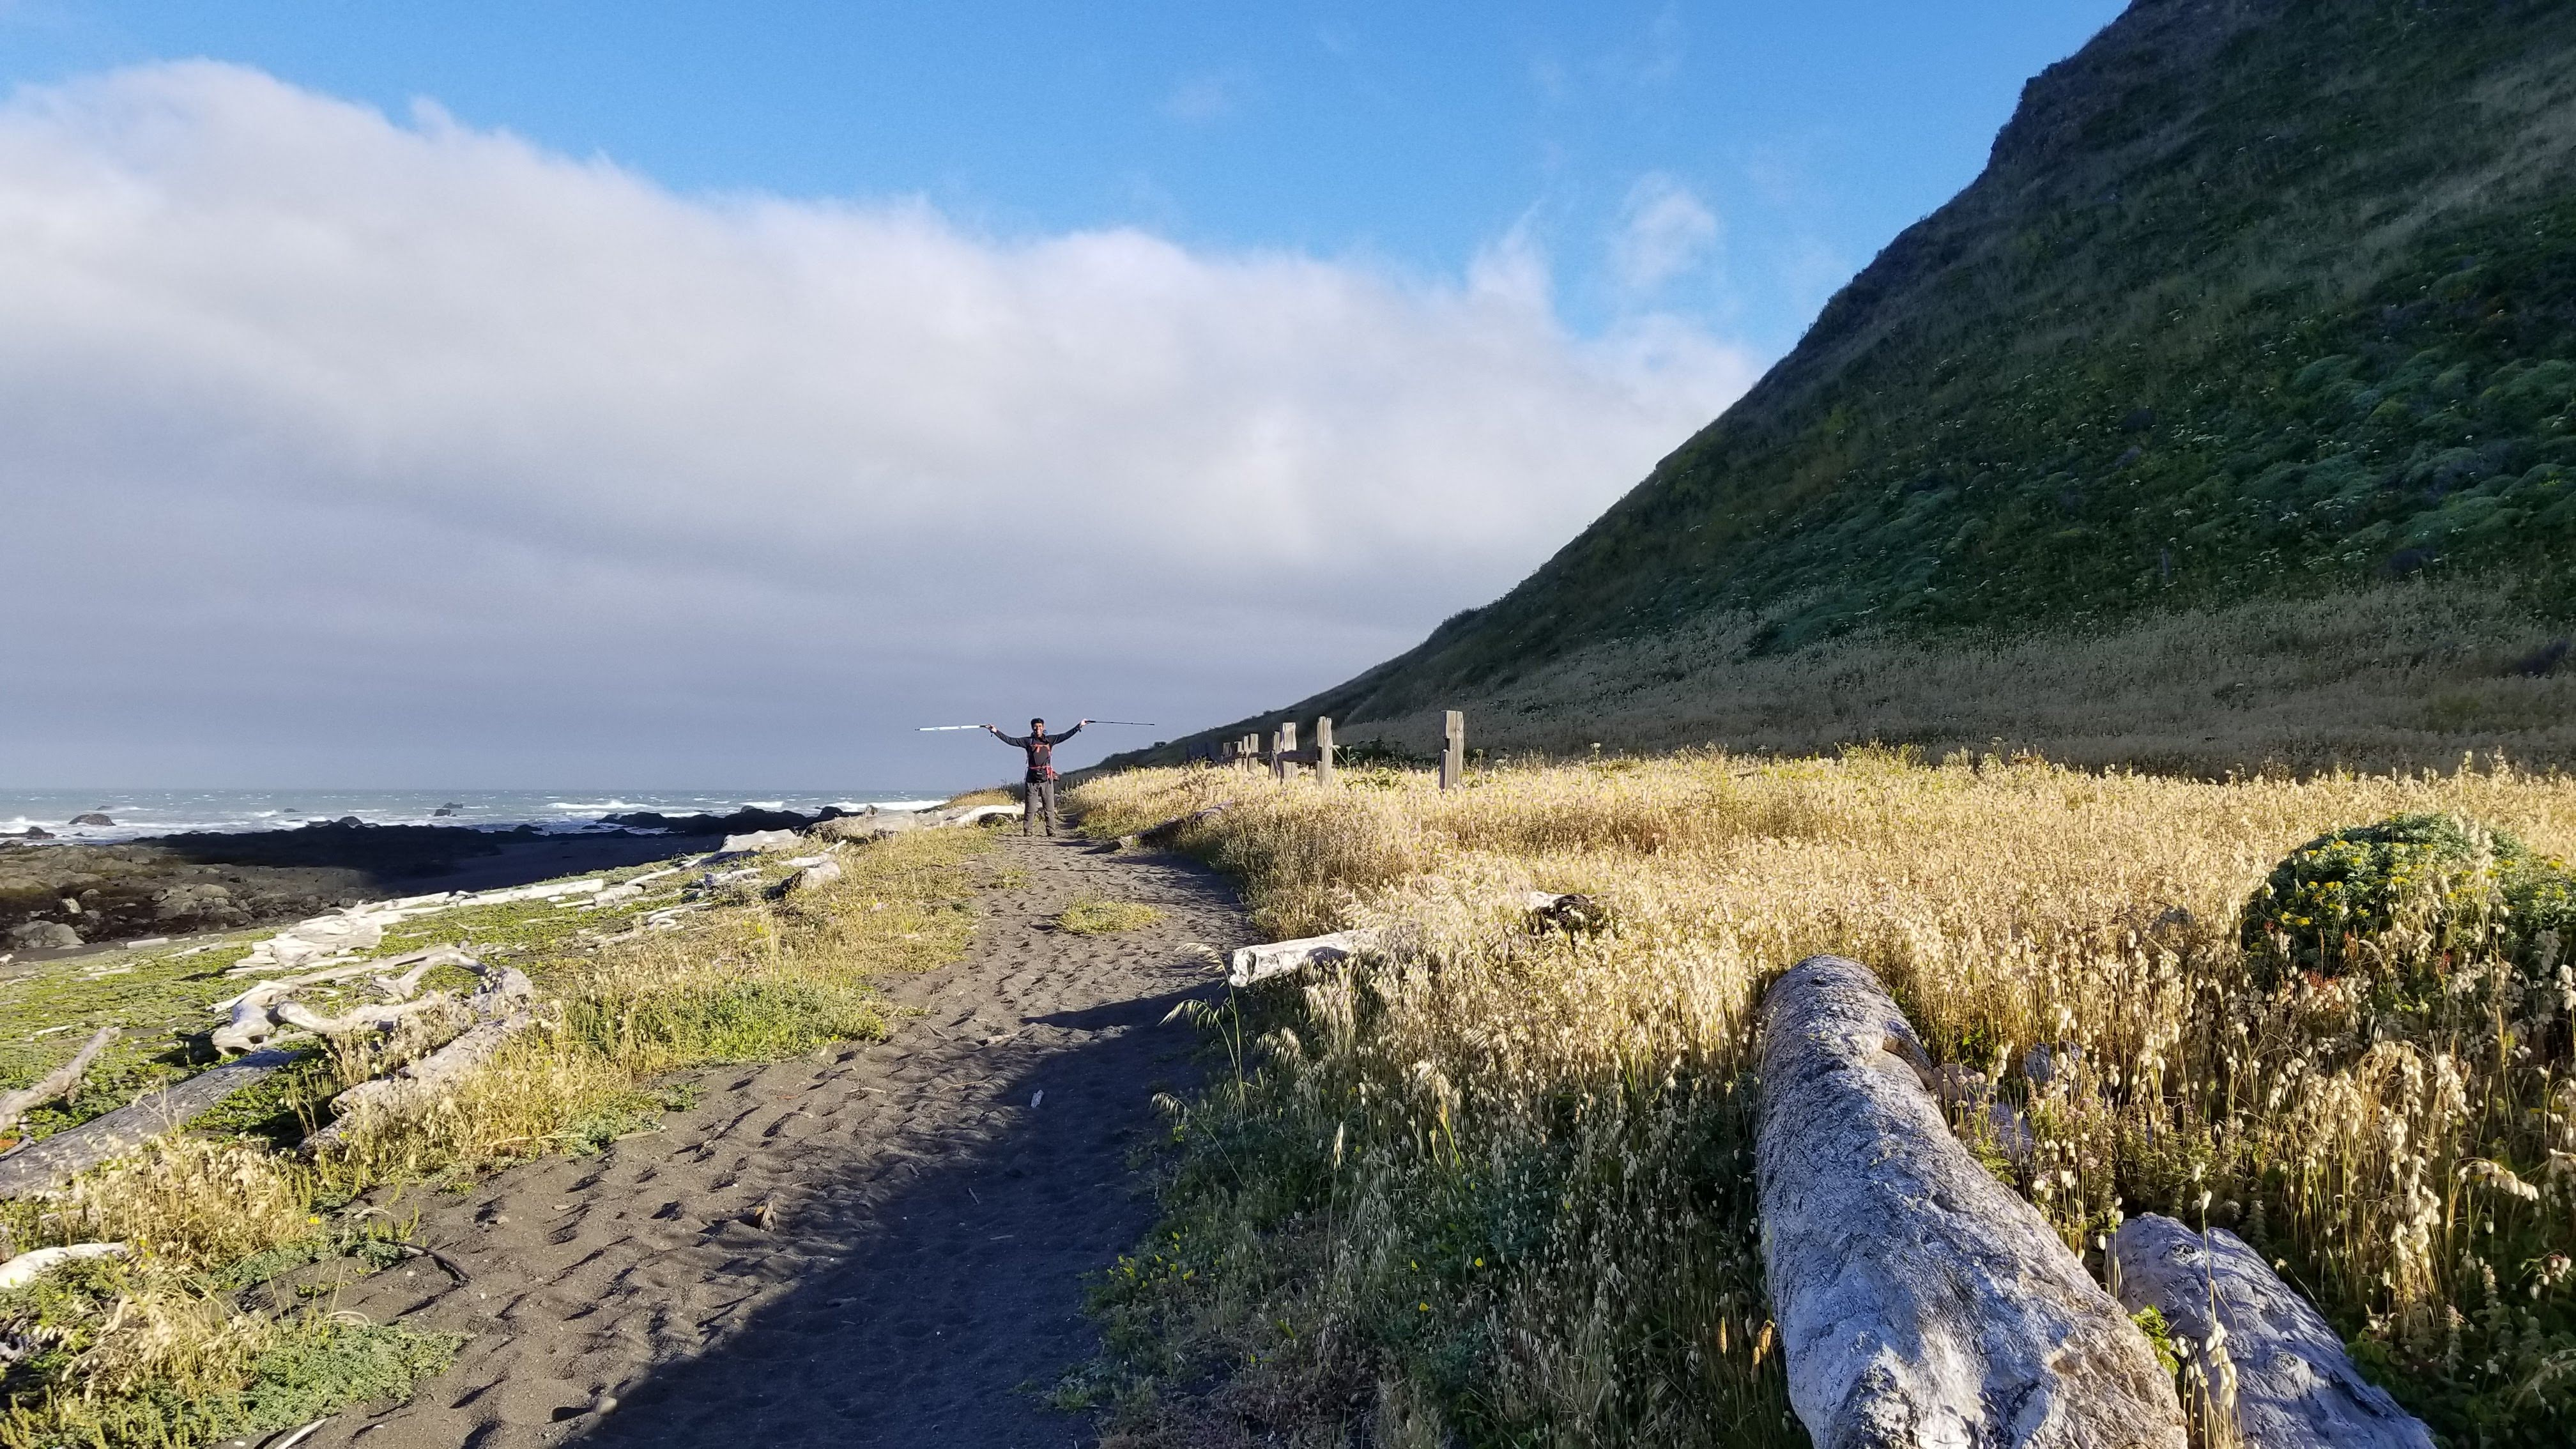 Taming the Lost Coast Trail